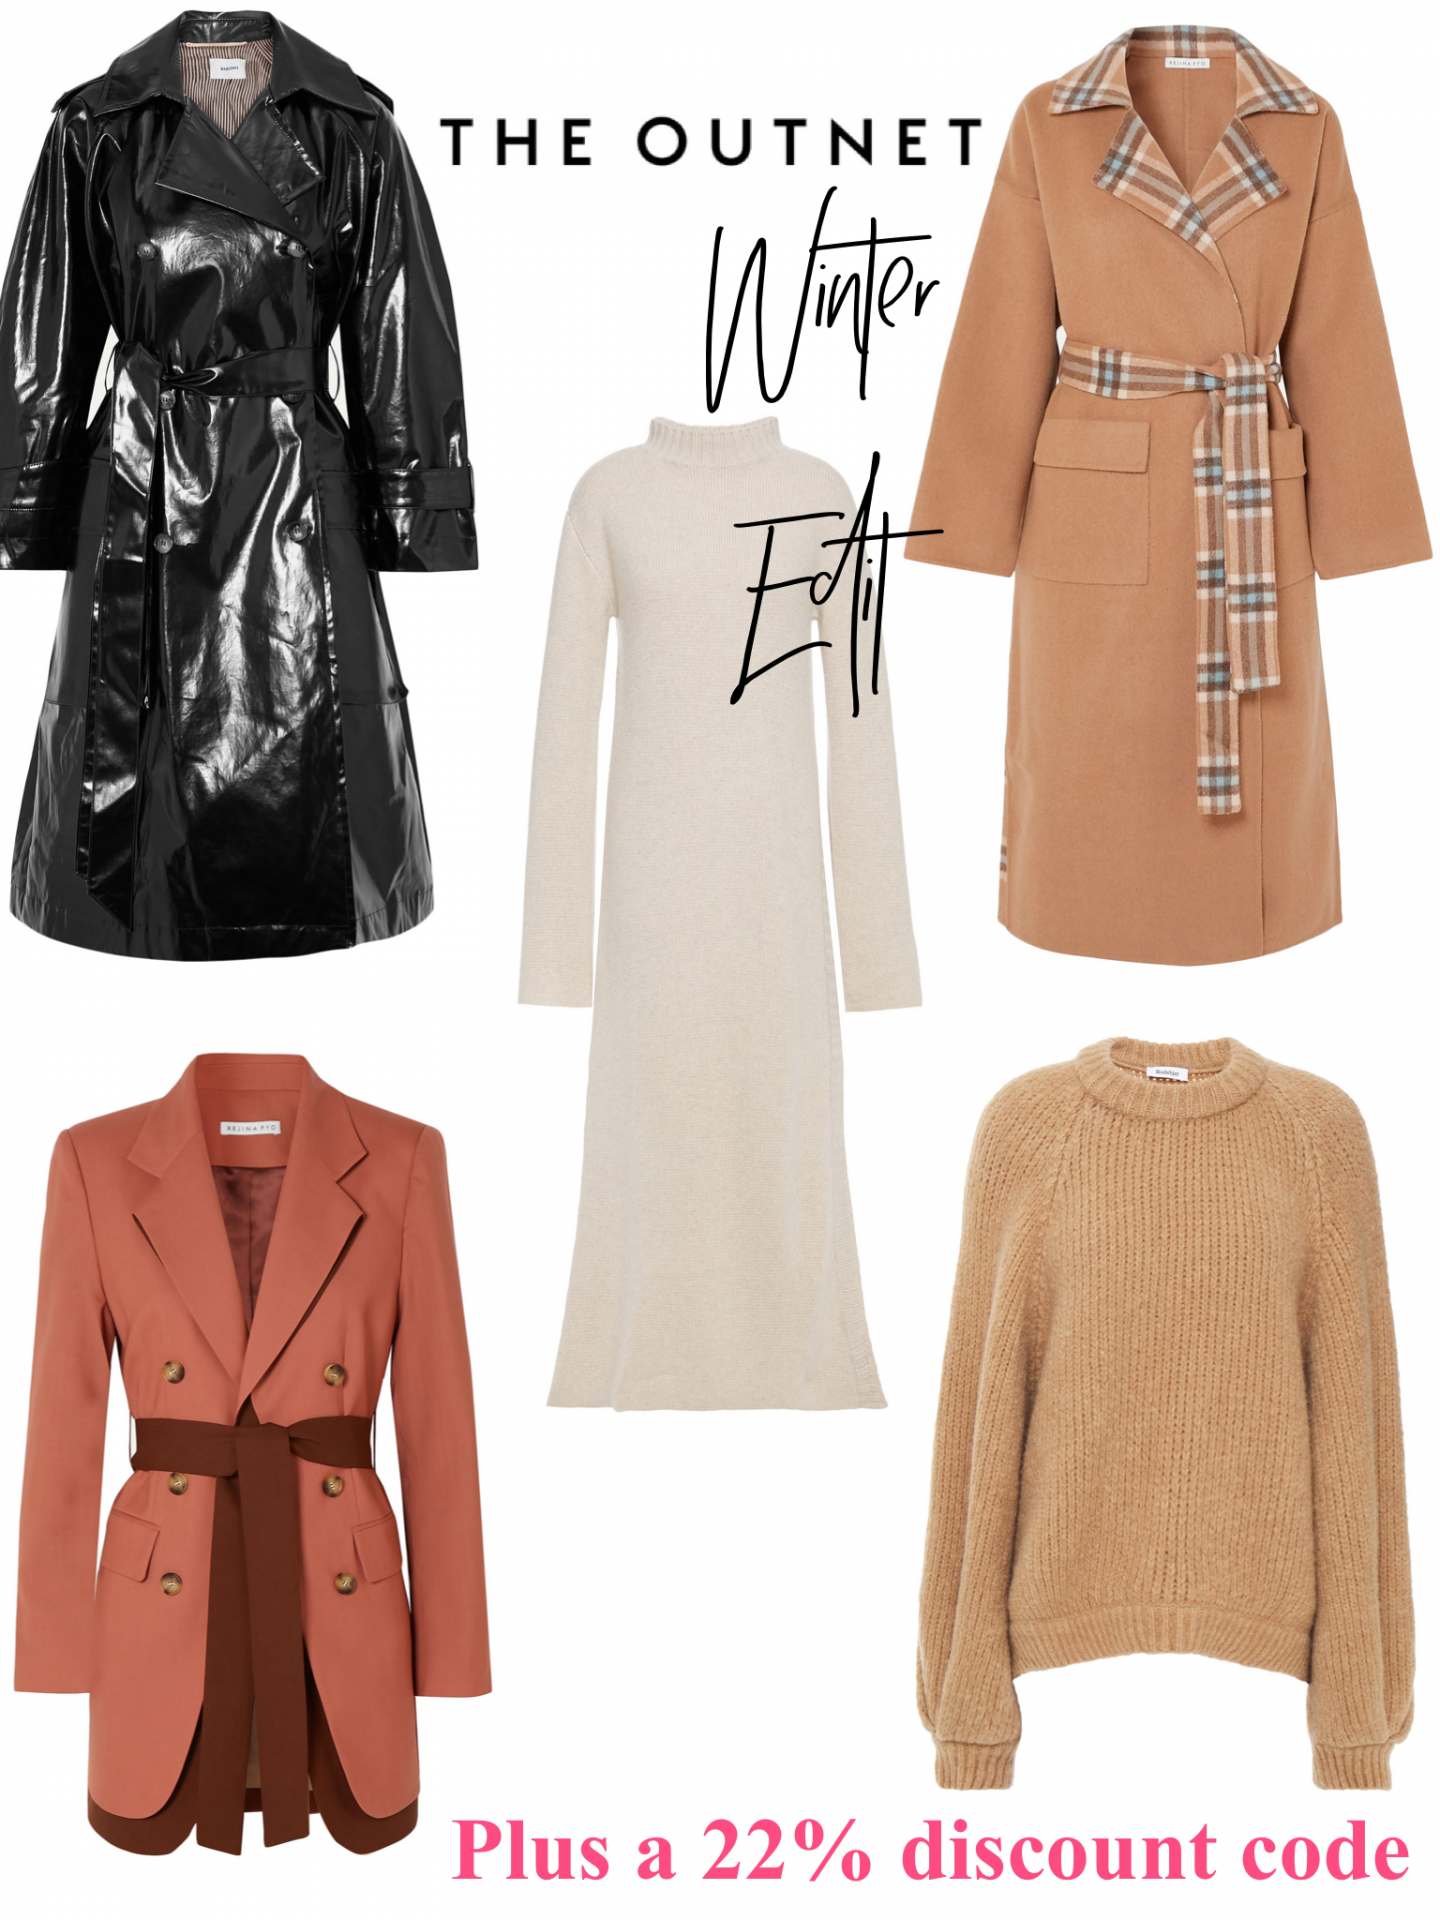 Winter Picks From The Outnet with a cheeky discount code